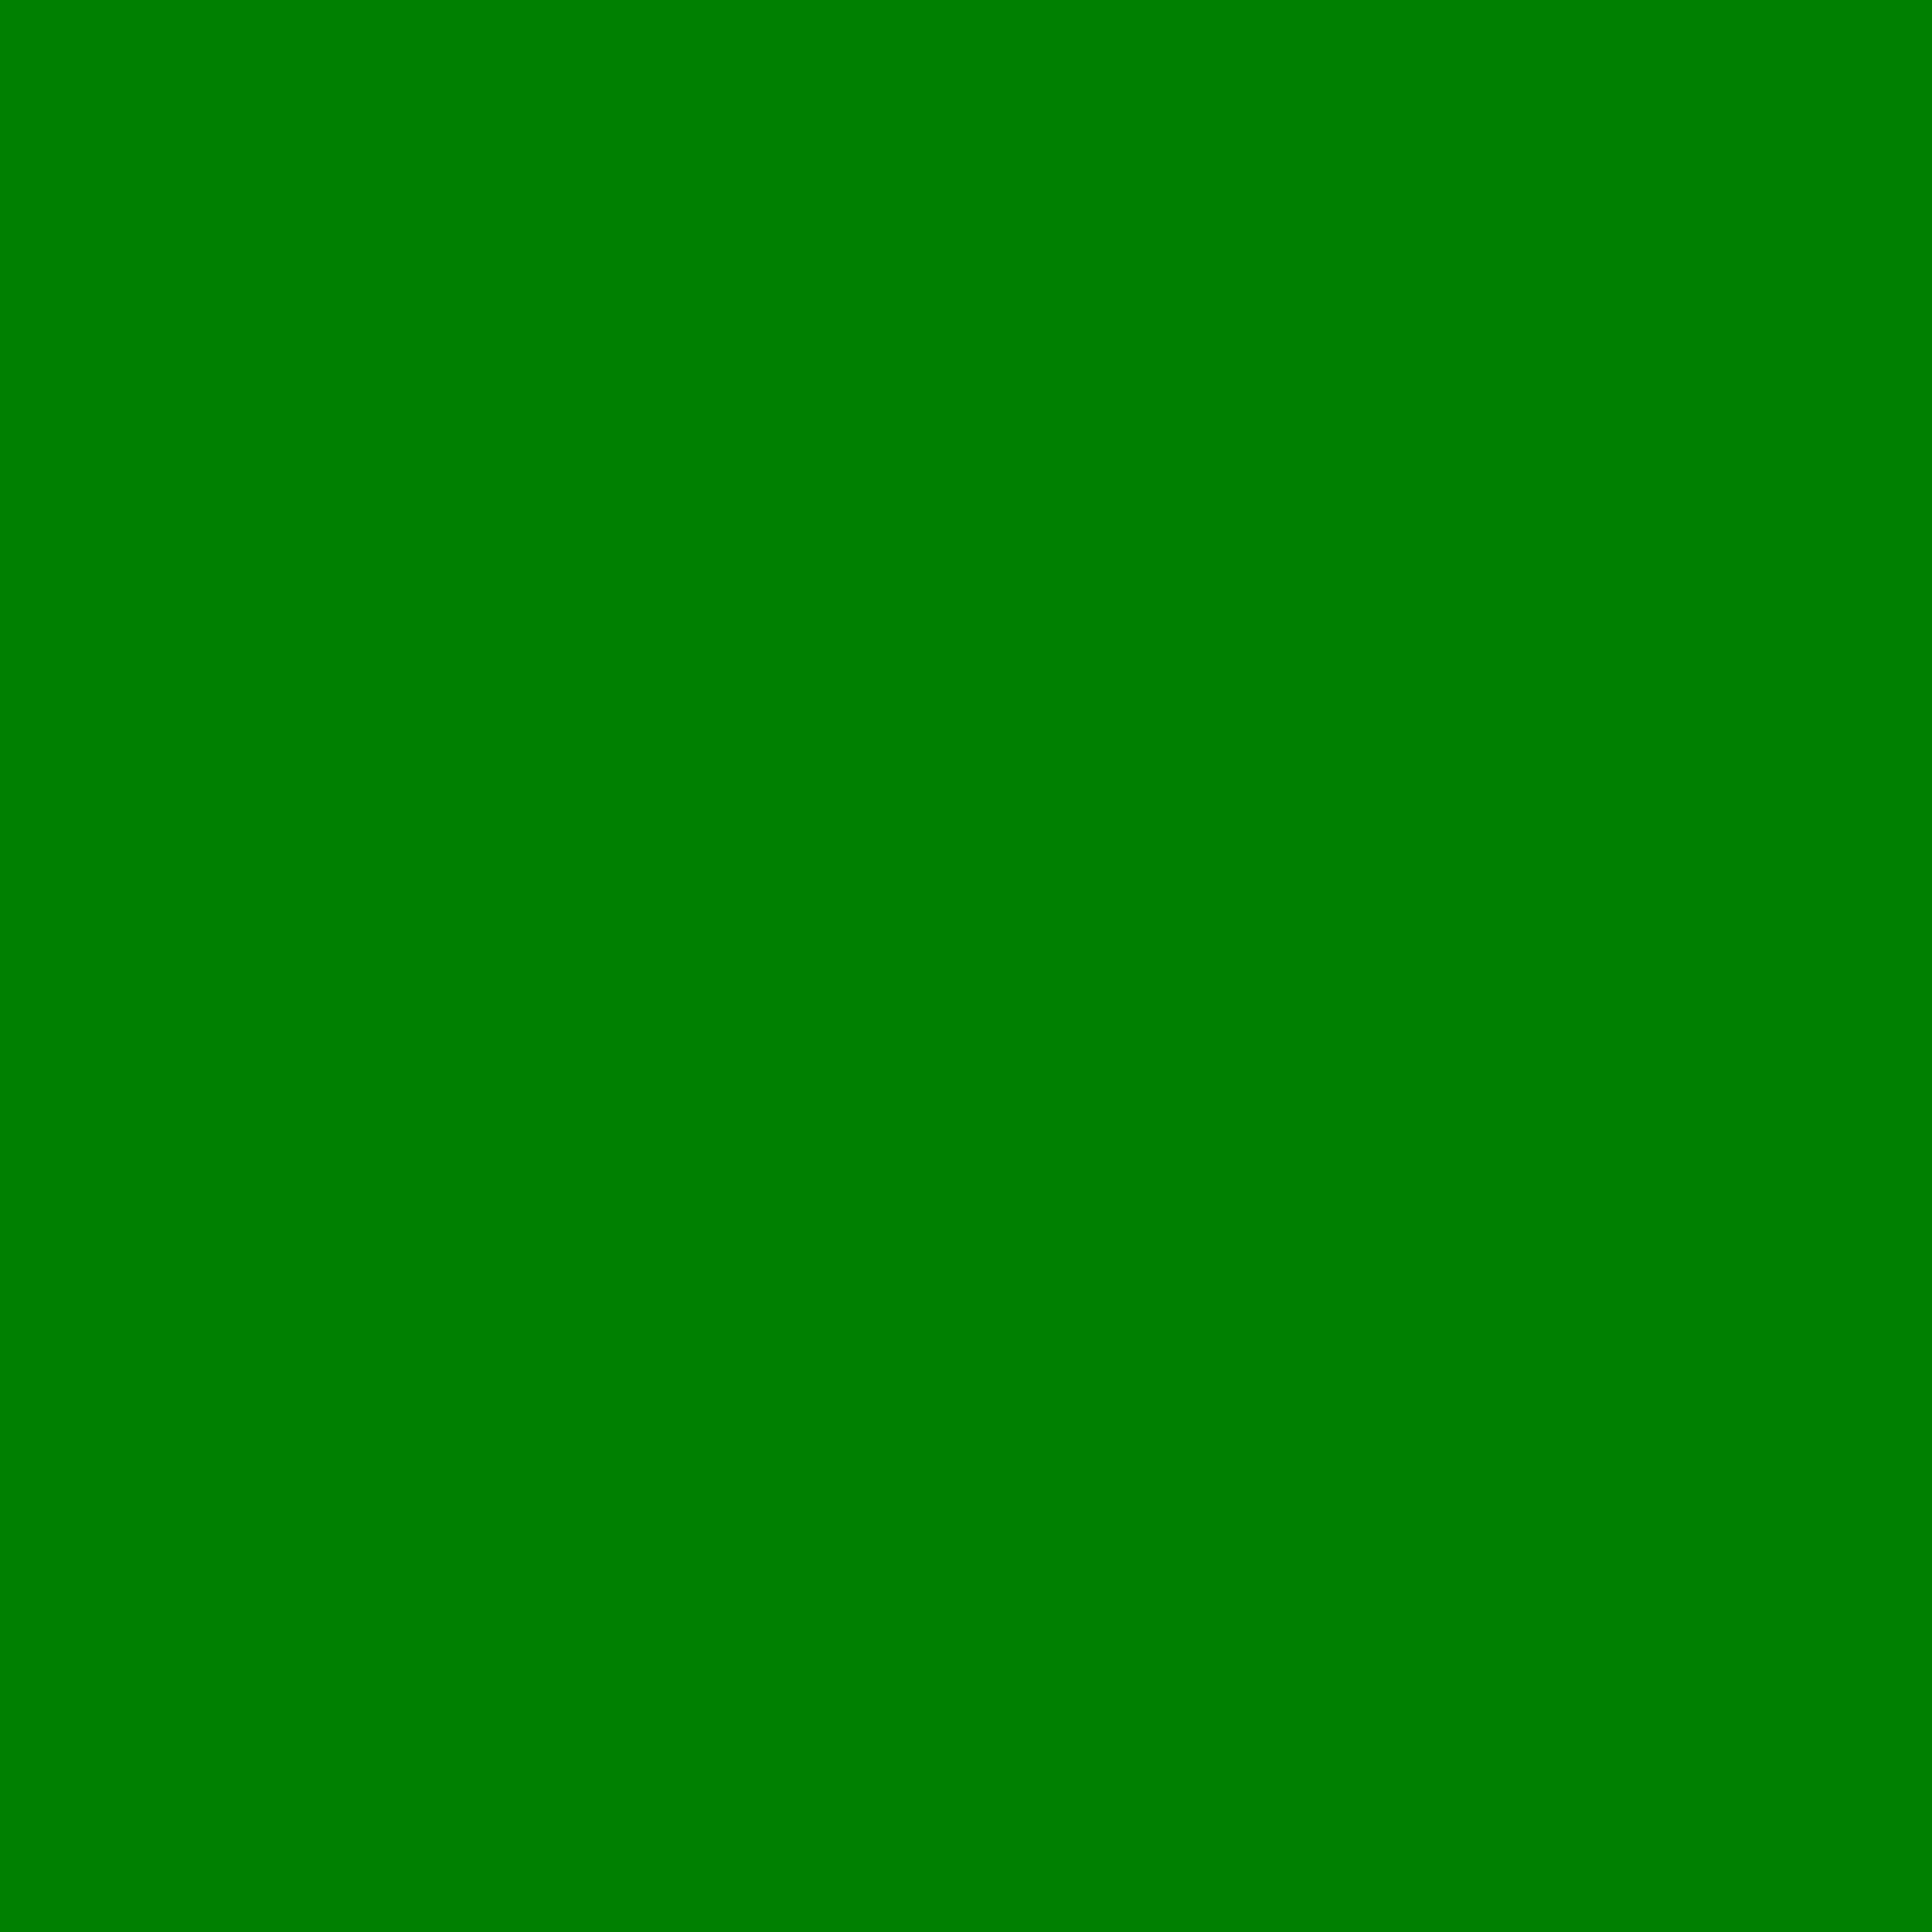 2048x2048 Office Green Solid Color Background